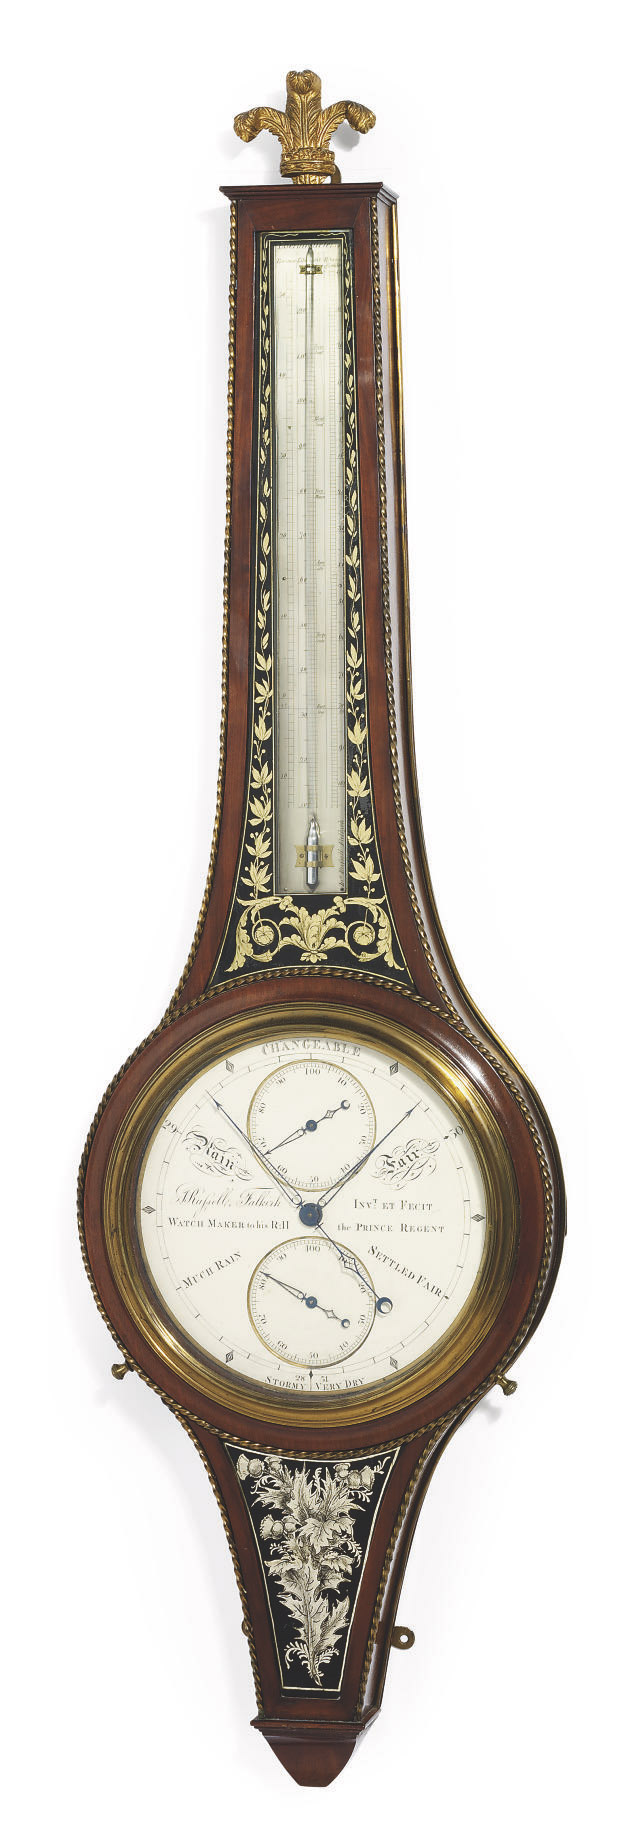 A REGENCY SCOTTISH MAHOGANY, VERRE EGLOMISÉ AND BRASS-MOUNTED WHEEL BAROMETER